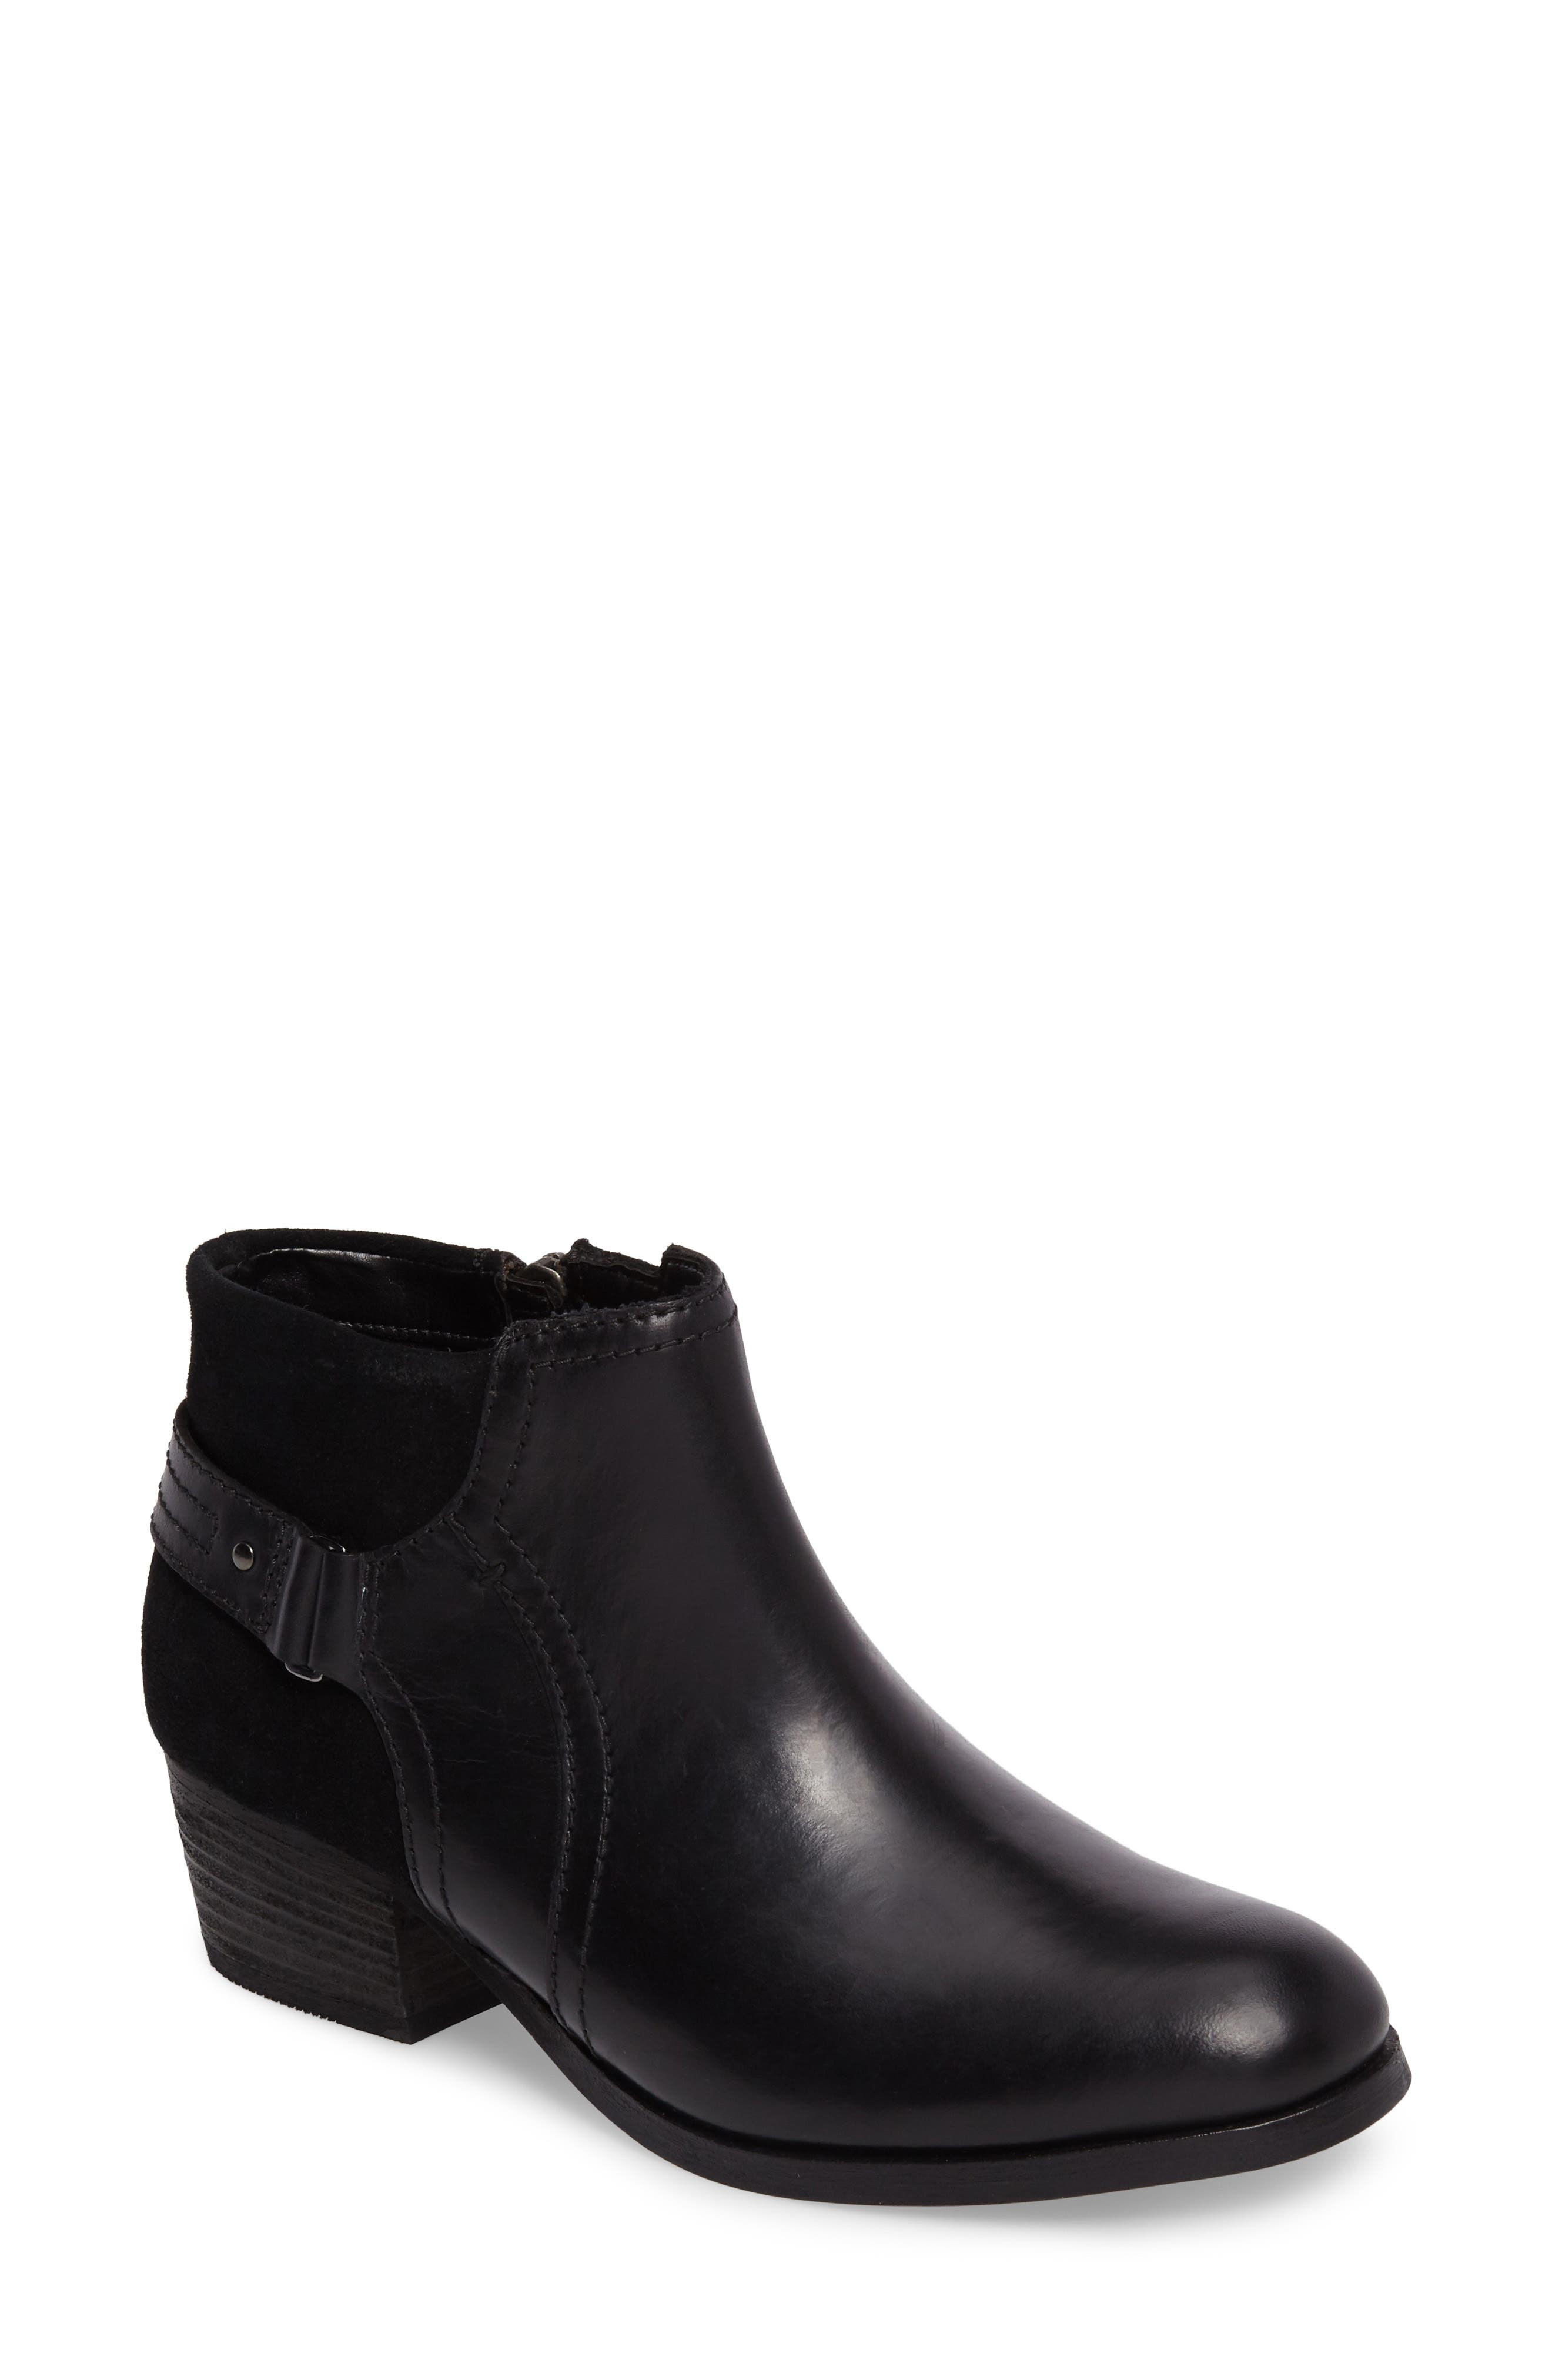 Maypearl Lilac Bootie,                         Main,                         color, Black Leather